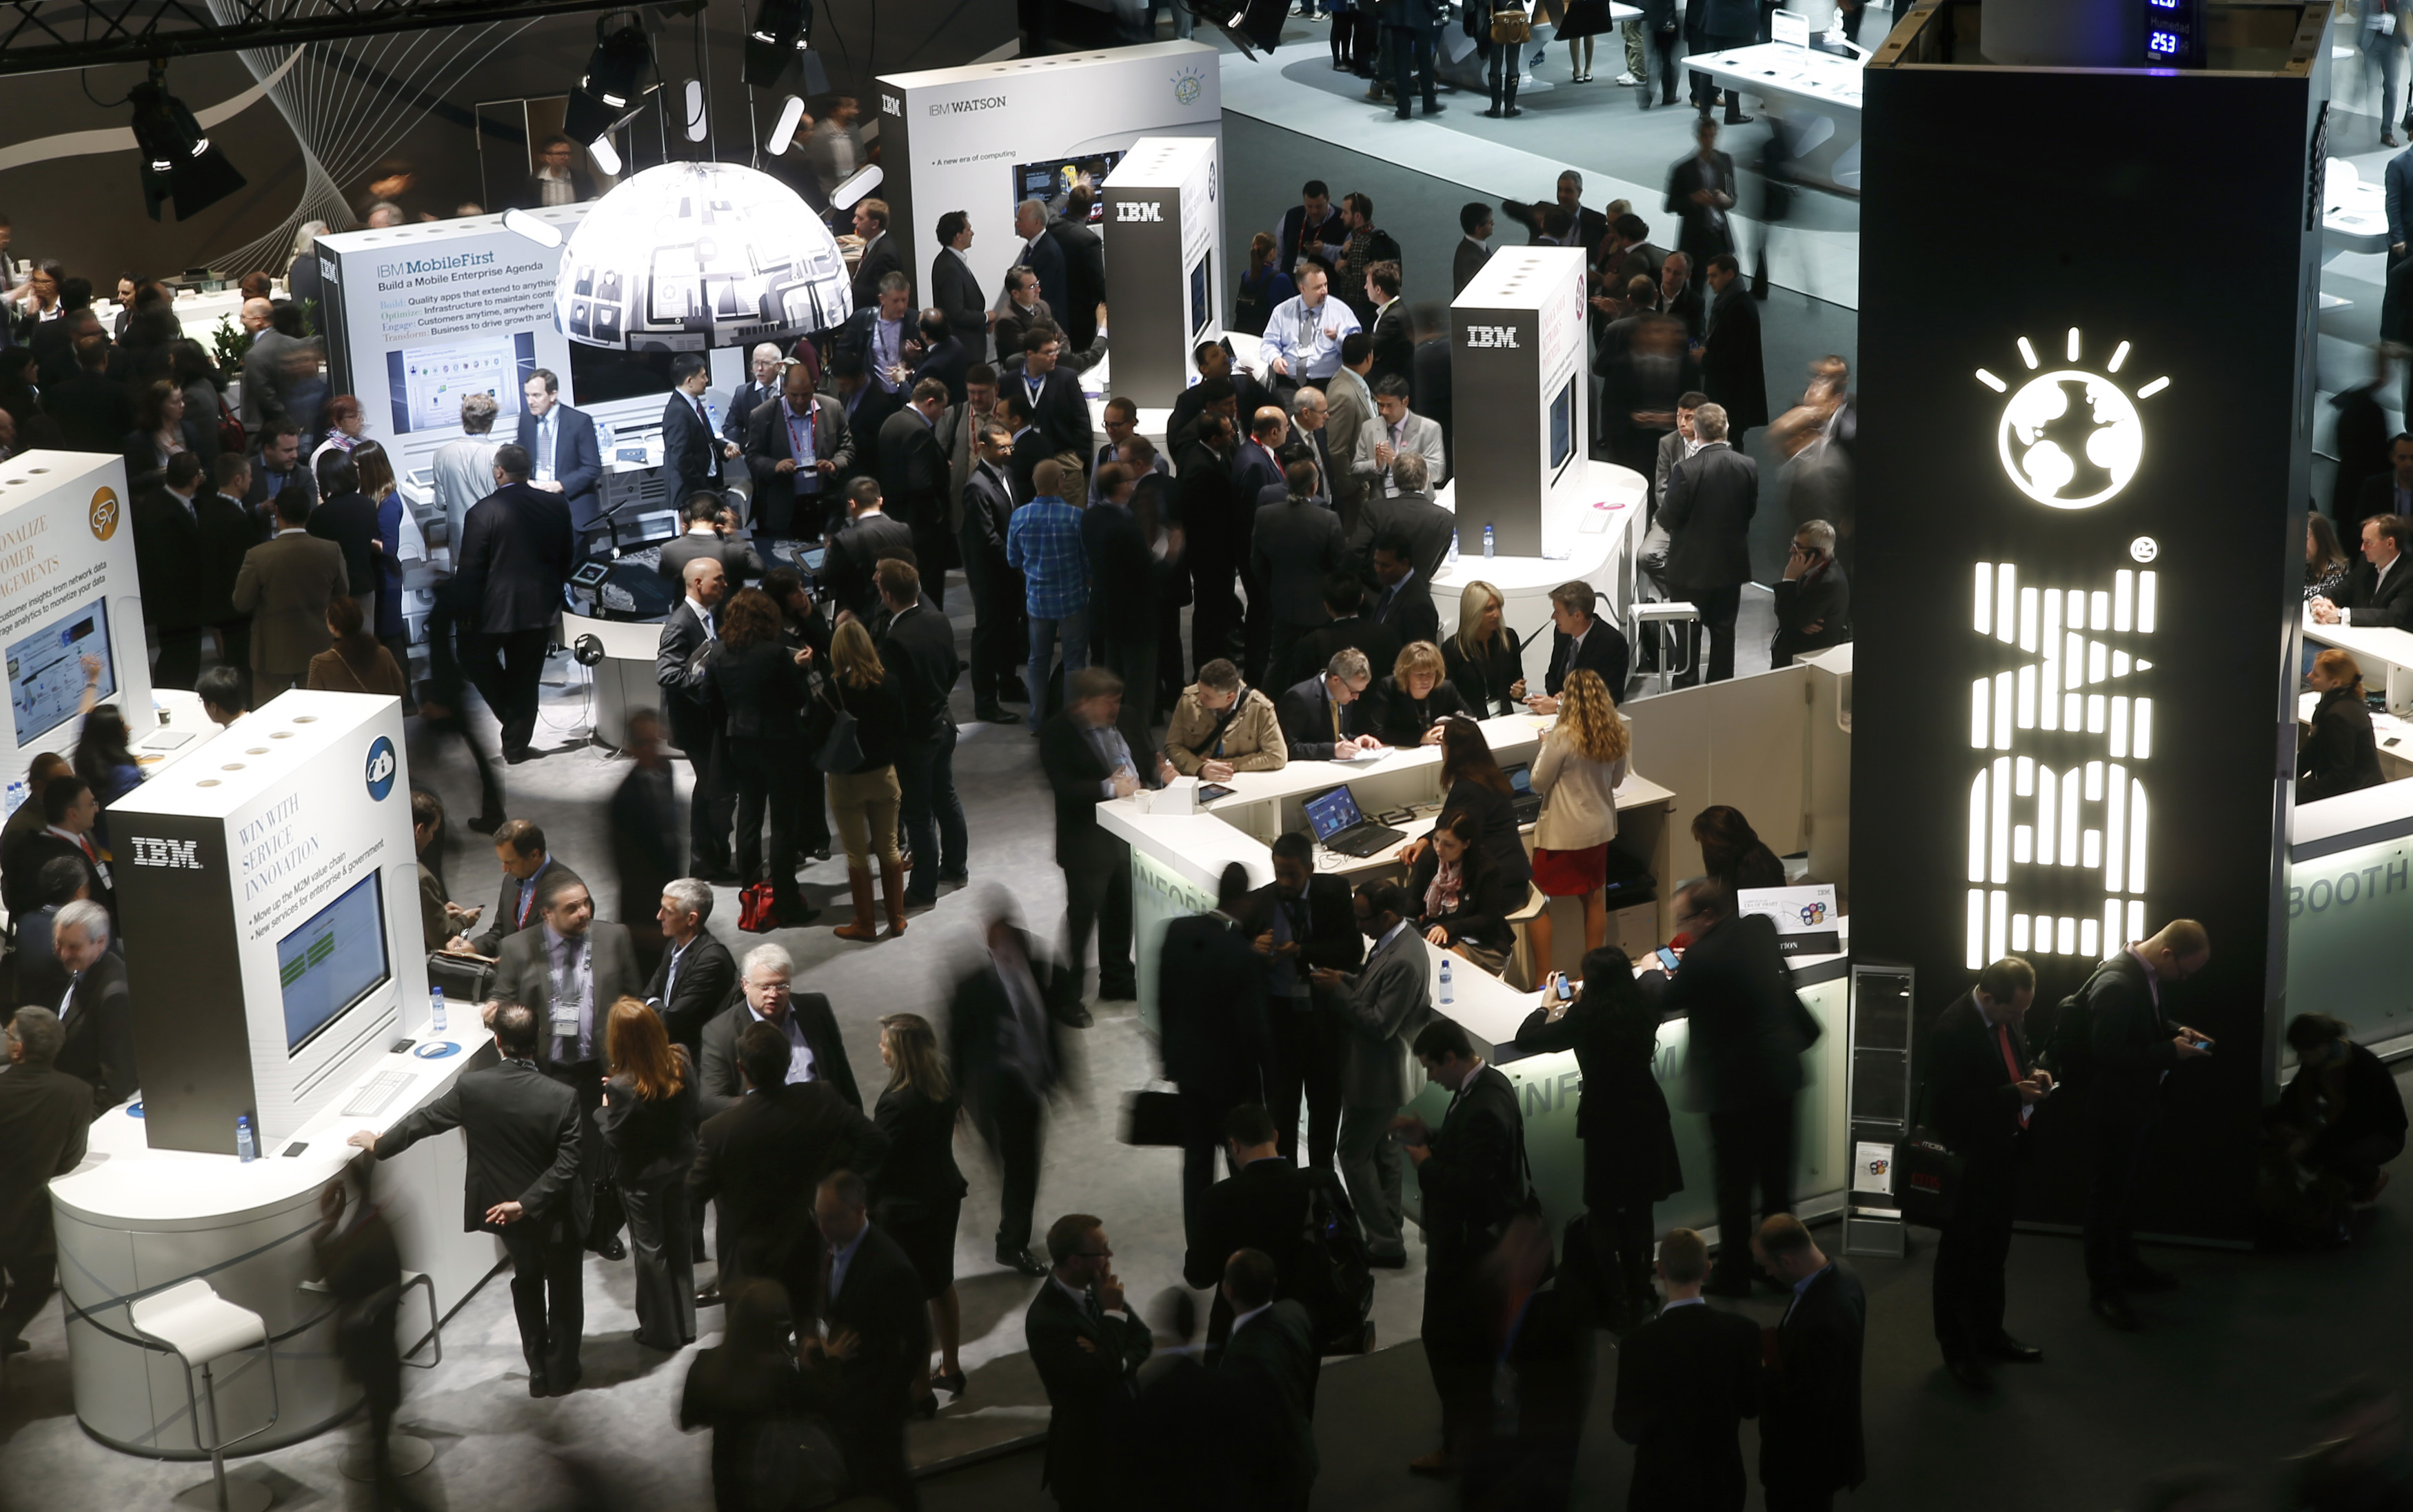 Participants visit the IBM stand at the Mobile World Congress in Barcelona, February 26, 2014.